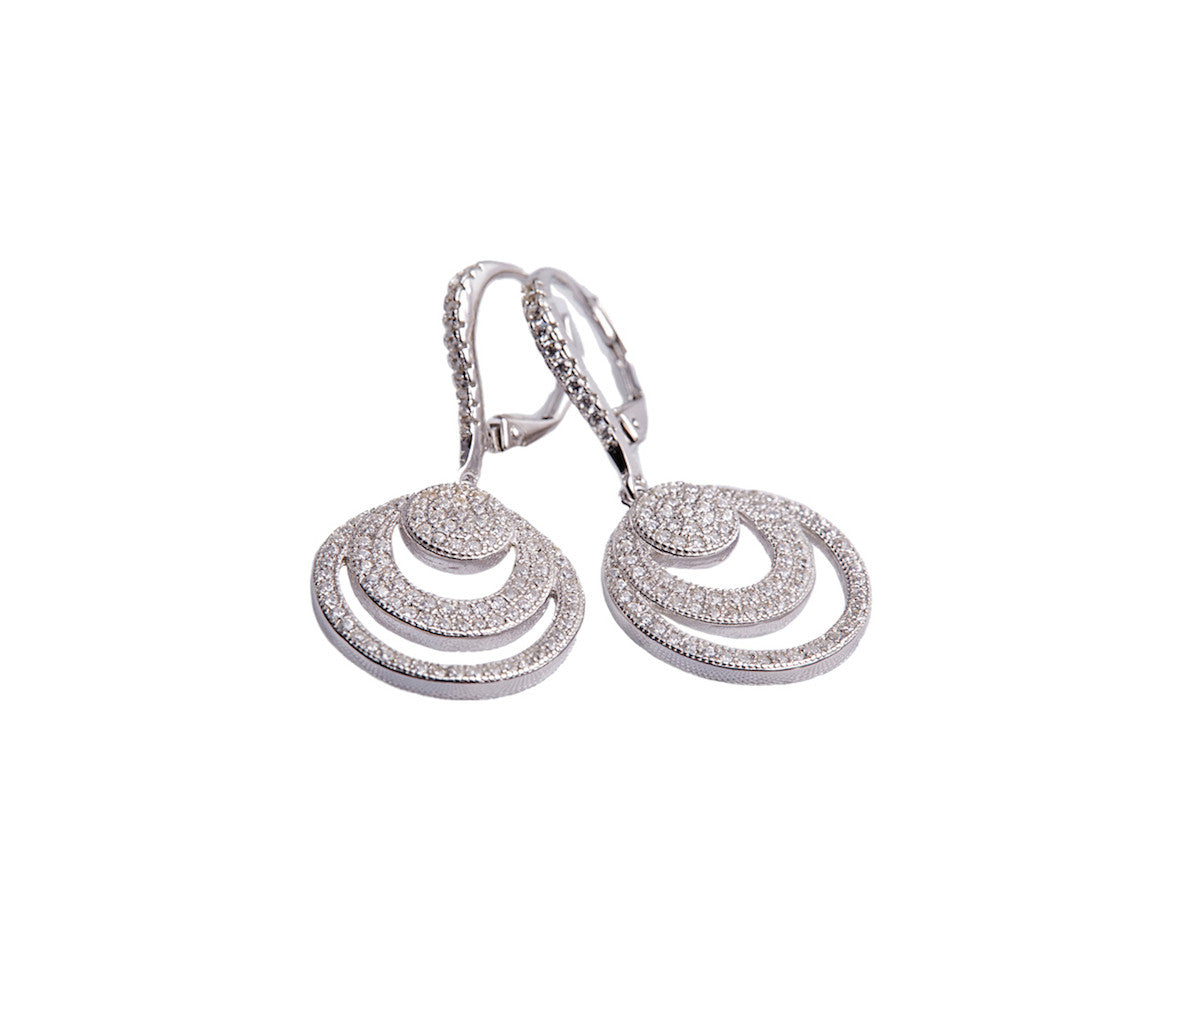 Silver Concentric Circles Drop Earrings